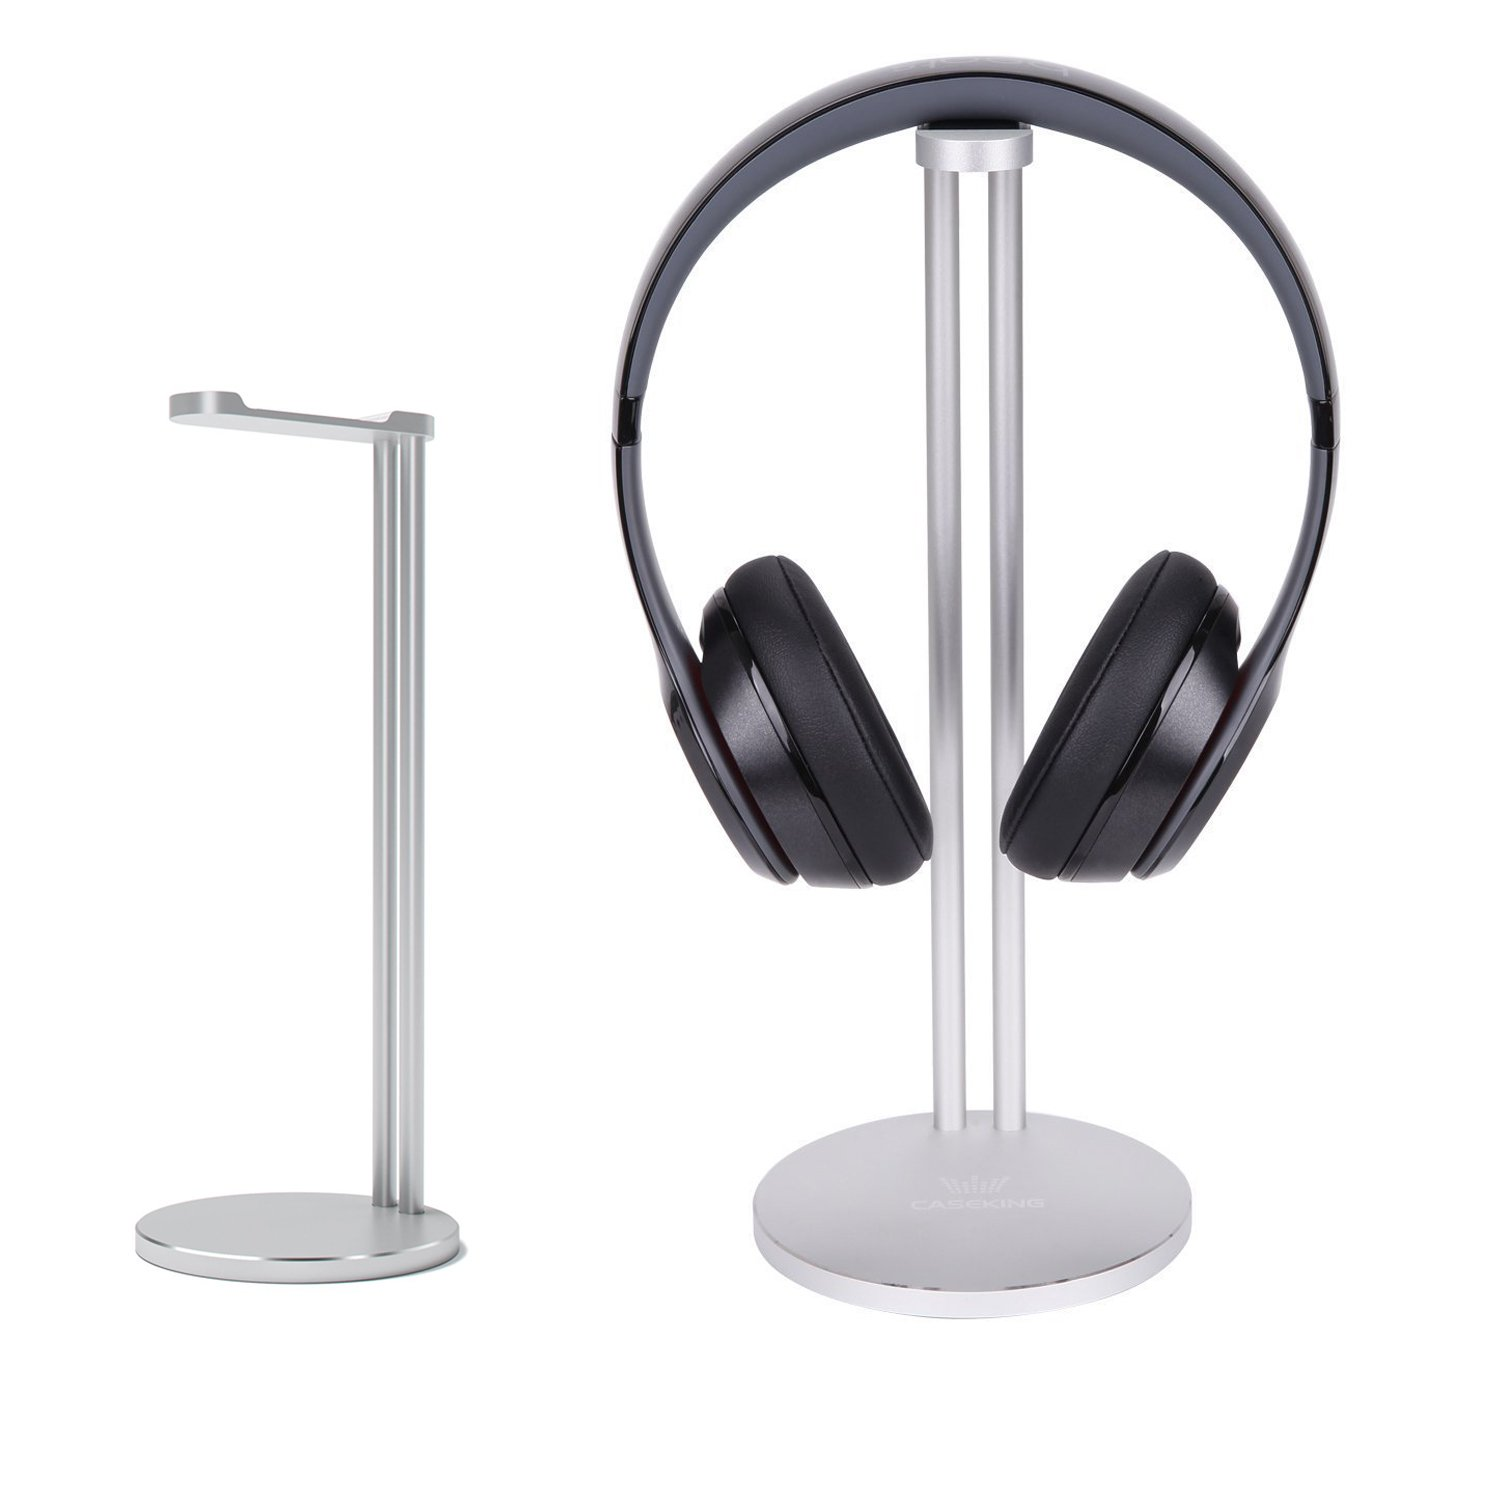 Headphone Stand, CASEKING headphone bracket for Bose, Beats, Sony, Philips, Skull Candy, Plantronics, JVC, Gaming, and DJ etc. Universal compatibility with all headphones(Argent) CK-EJZJ-AT